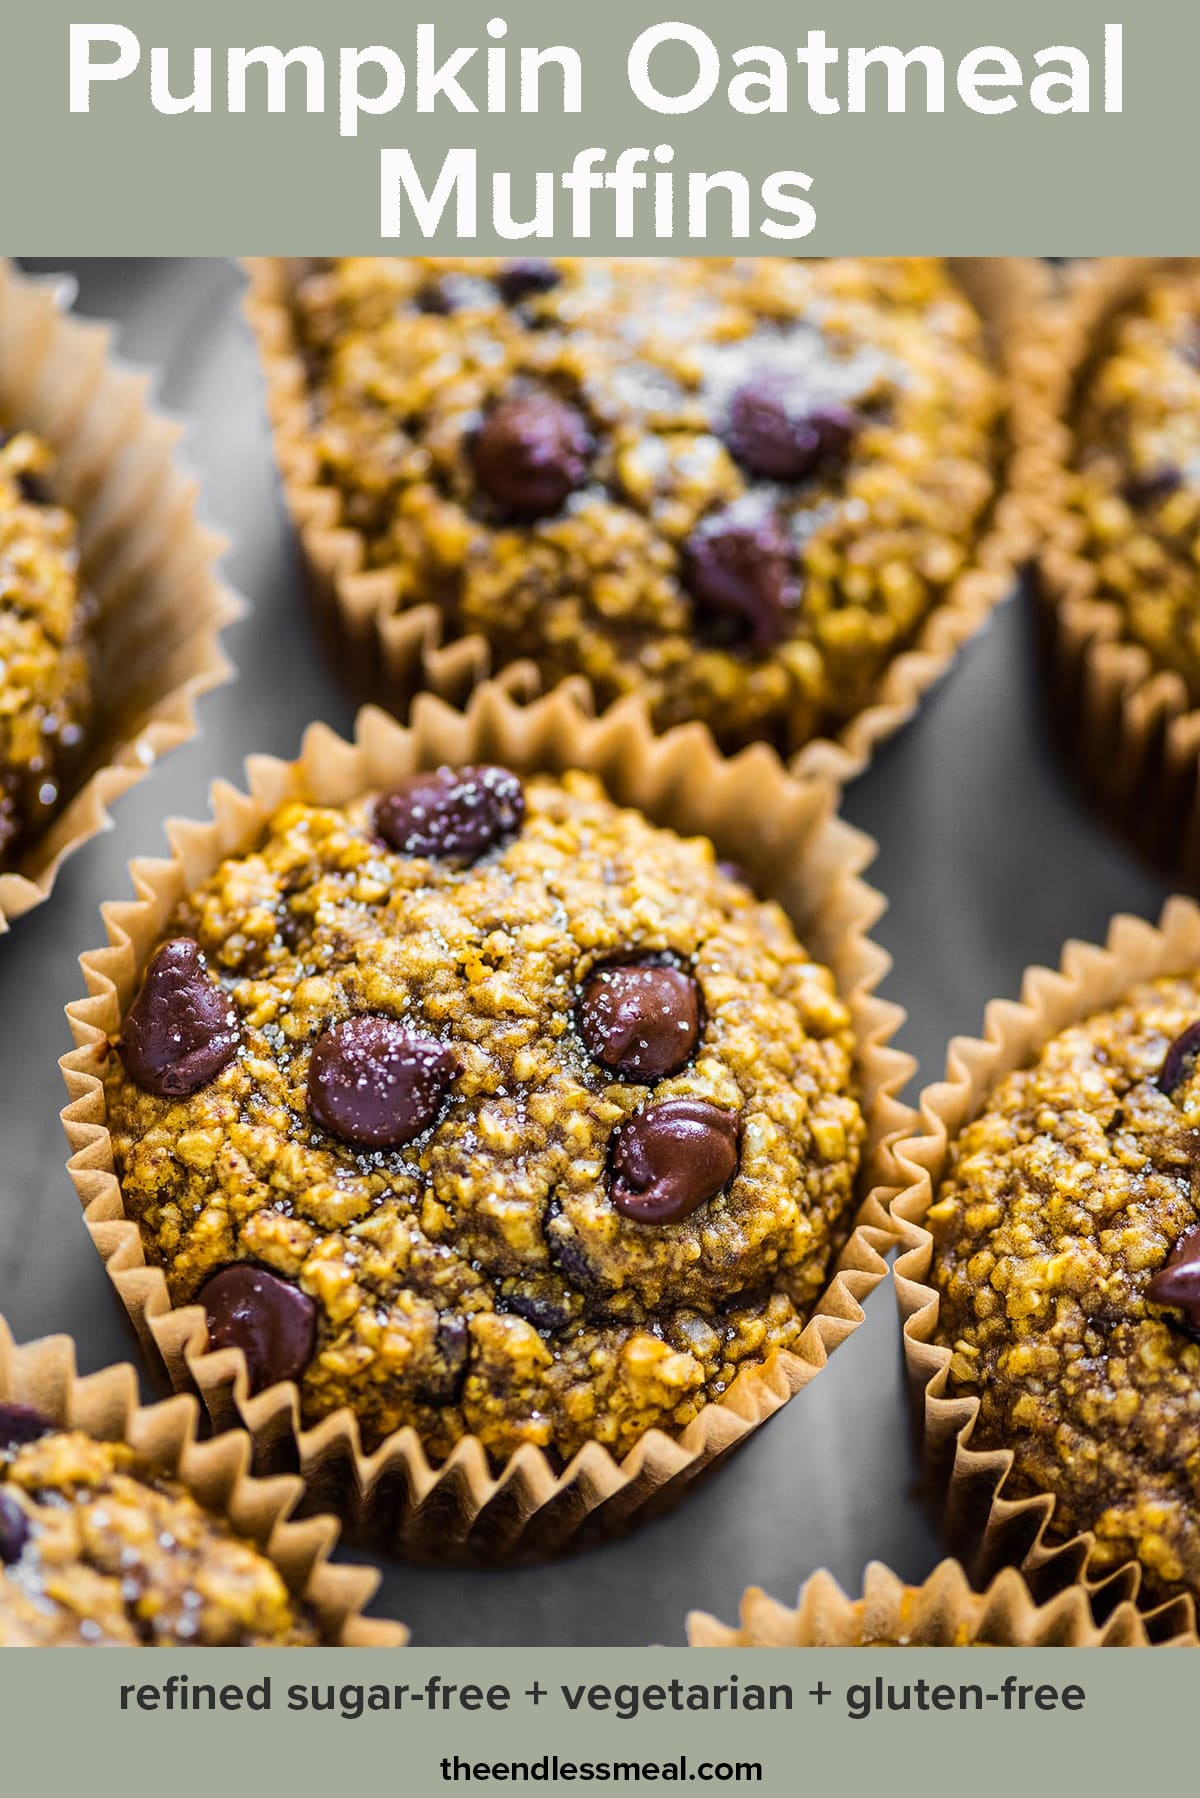 Pumpkin oatmeal muffins on a tray and the recipe title on top of the picture.